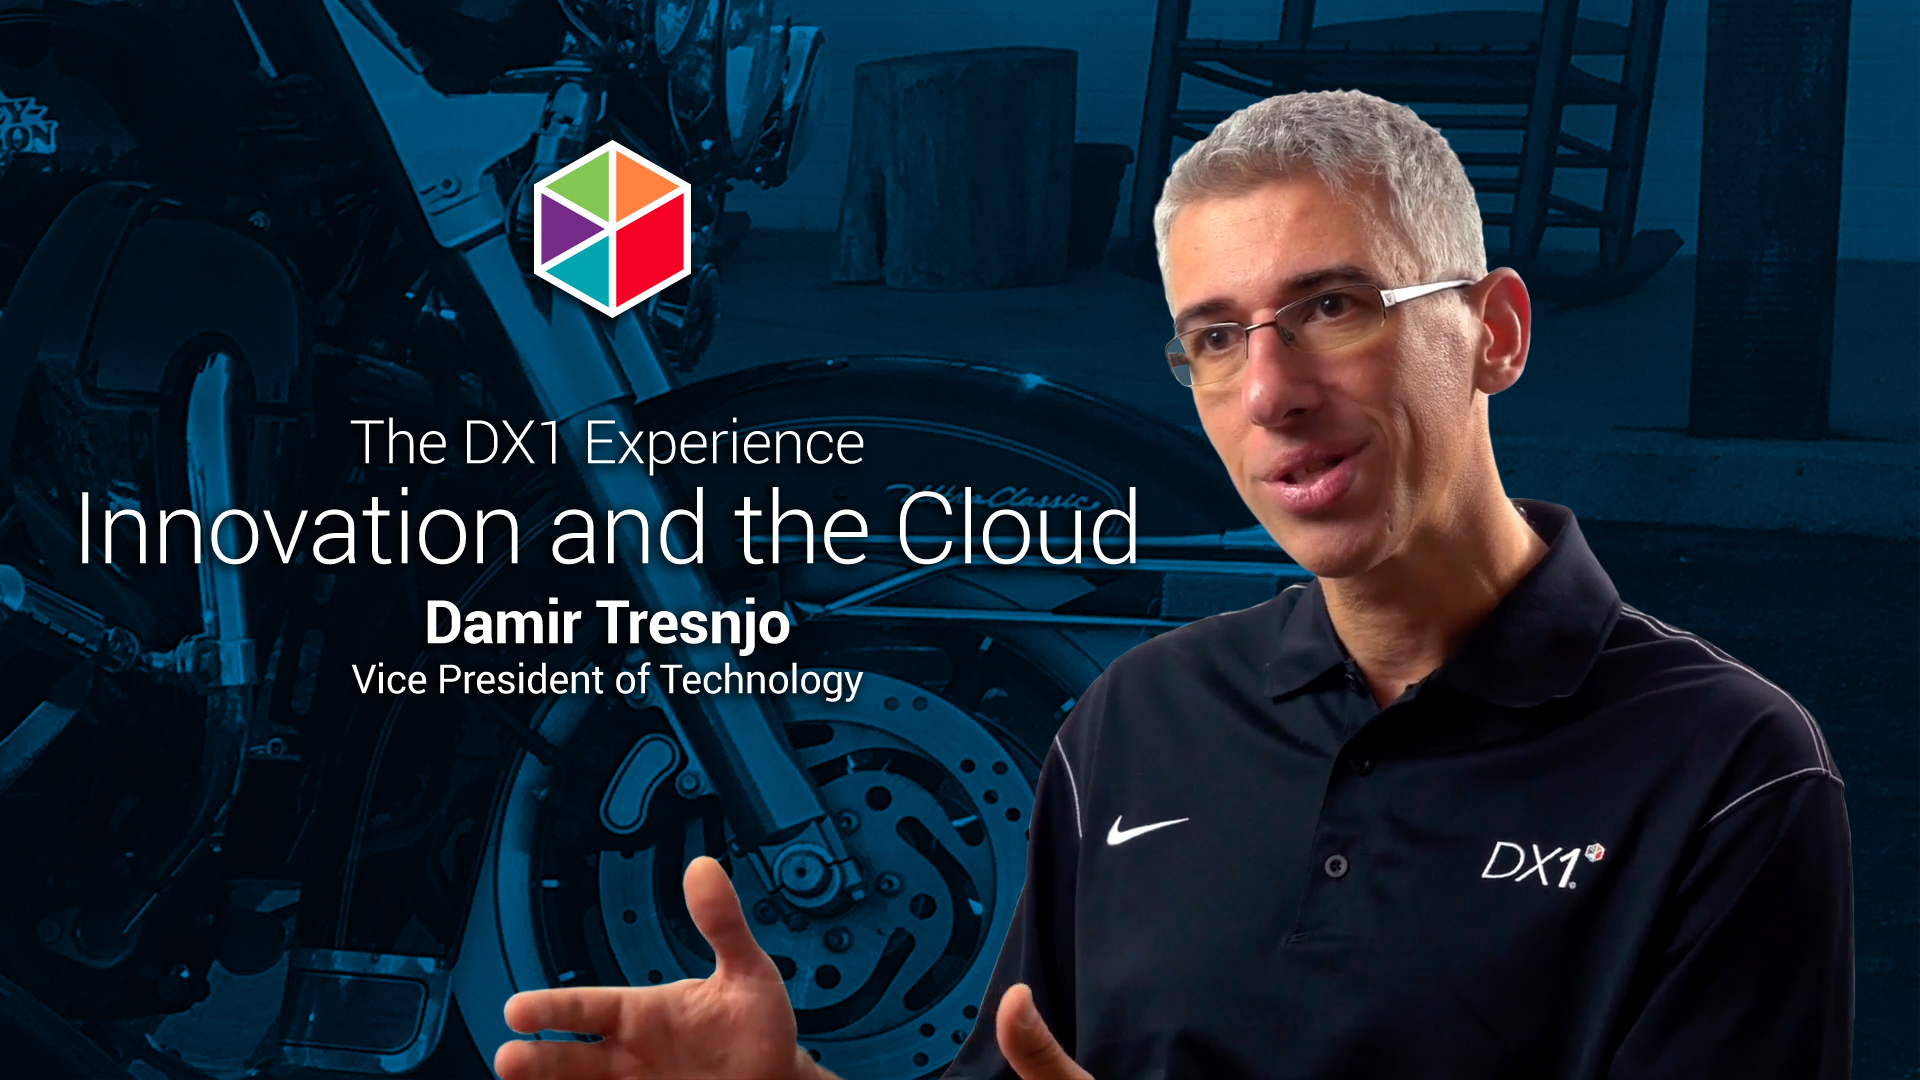 The DX1 Experience: Innovation and the Cloud